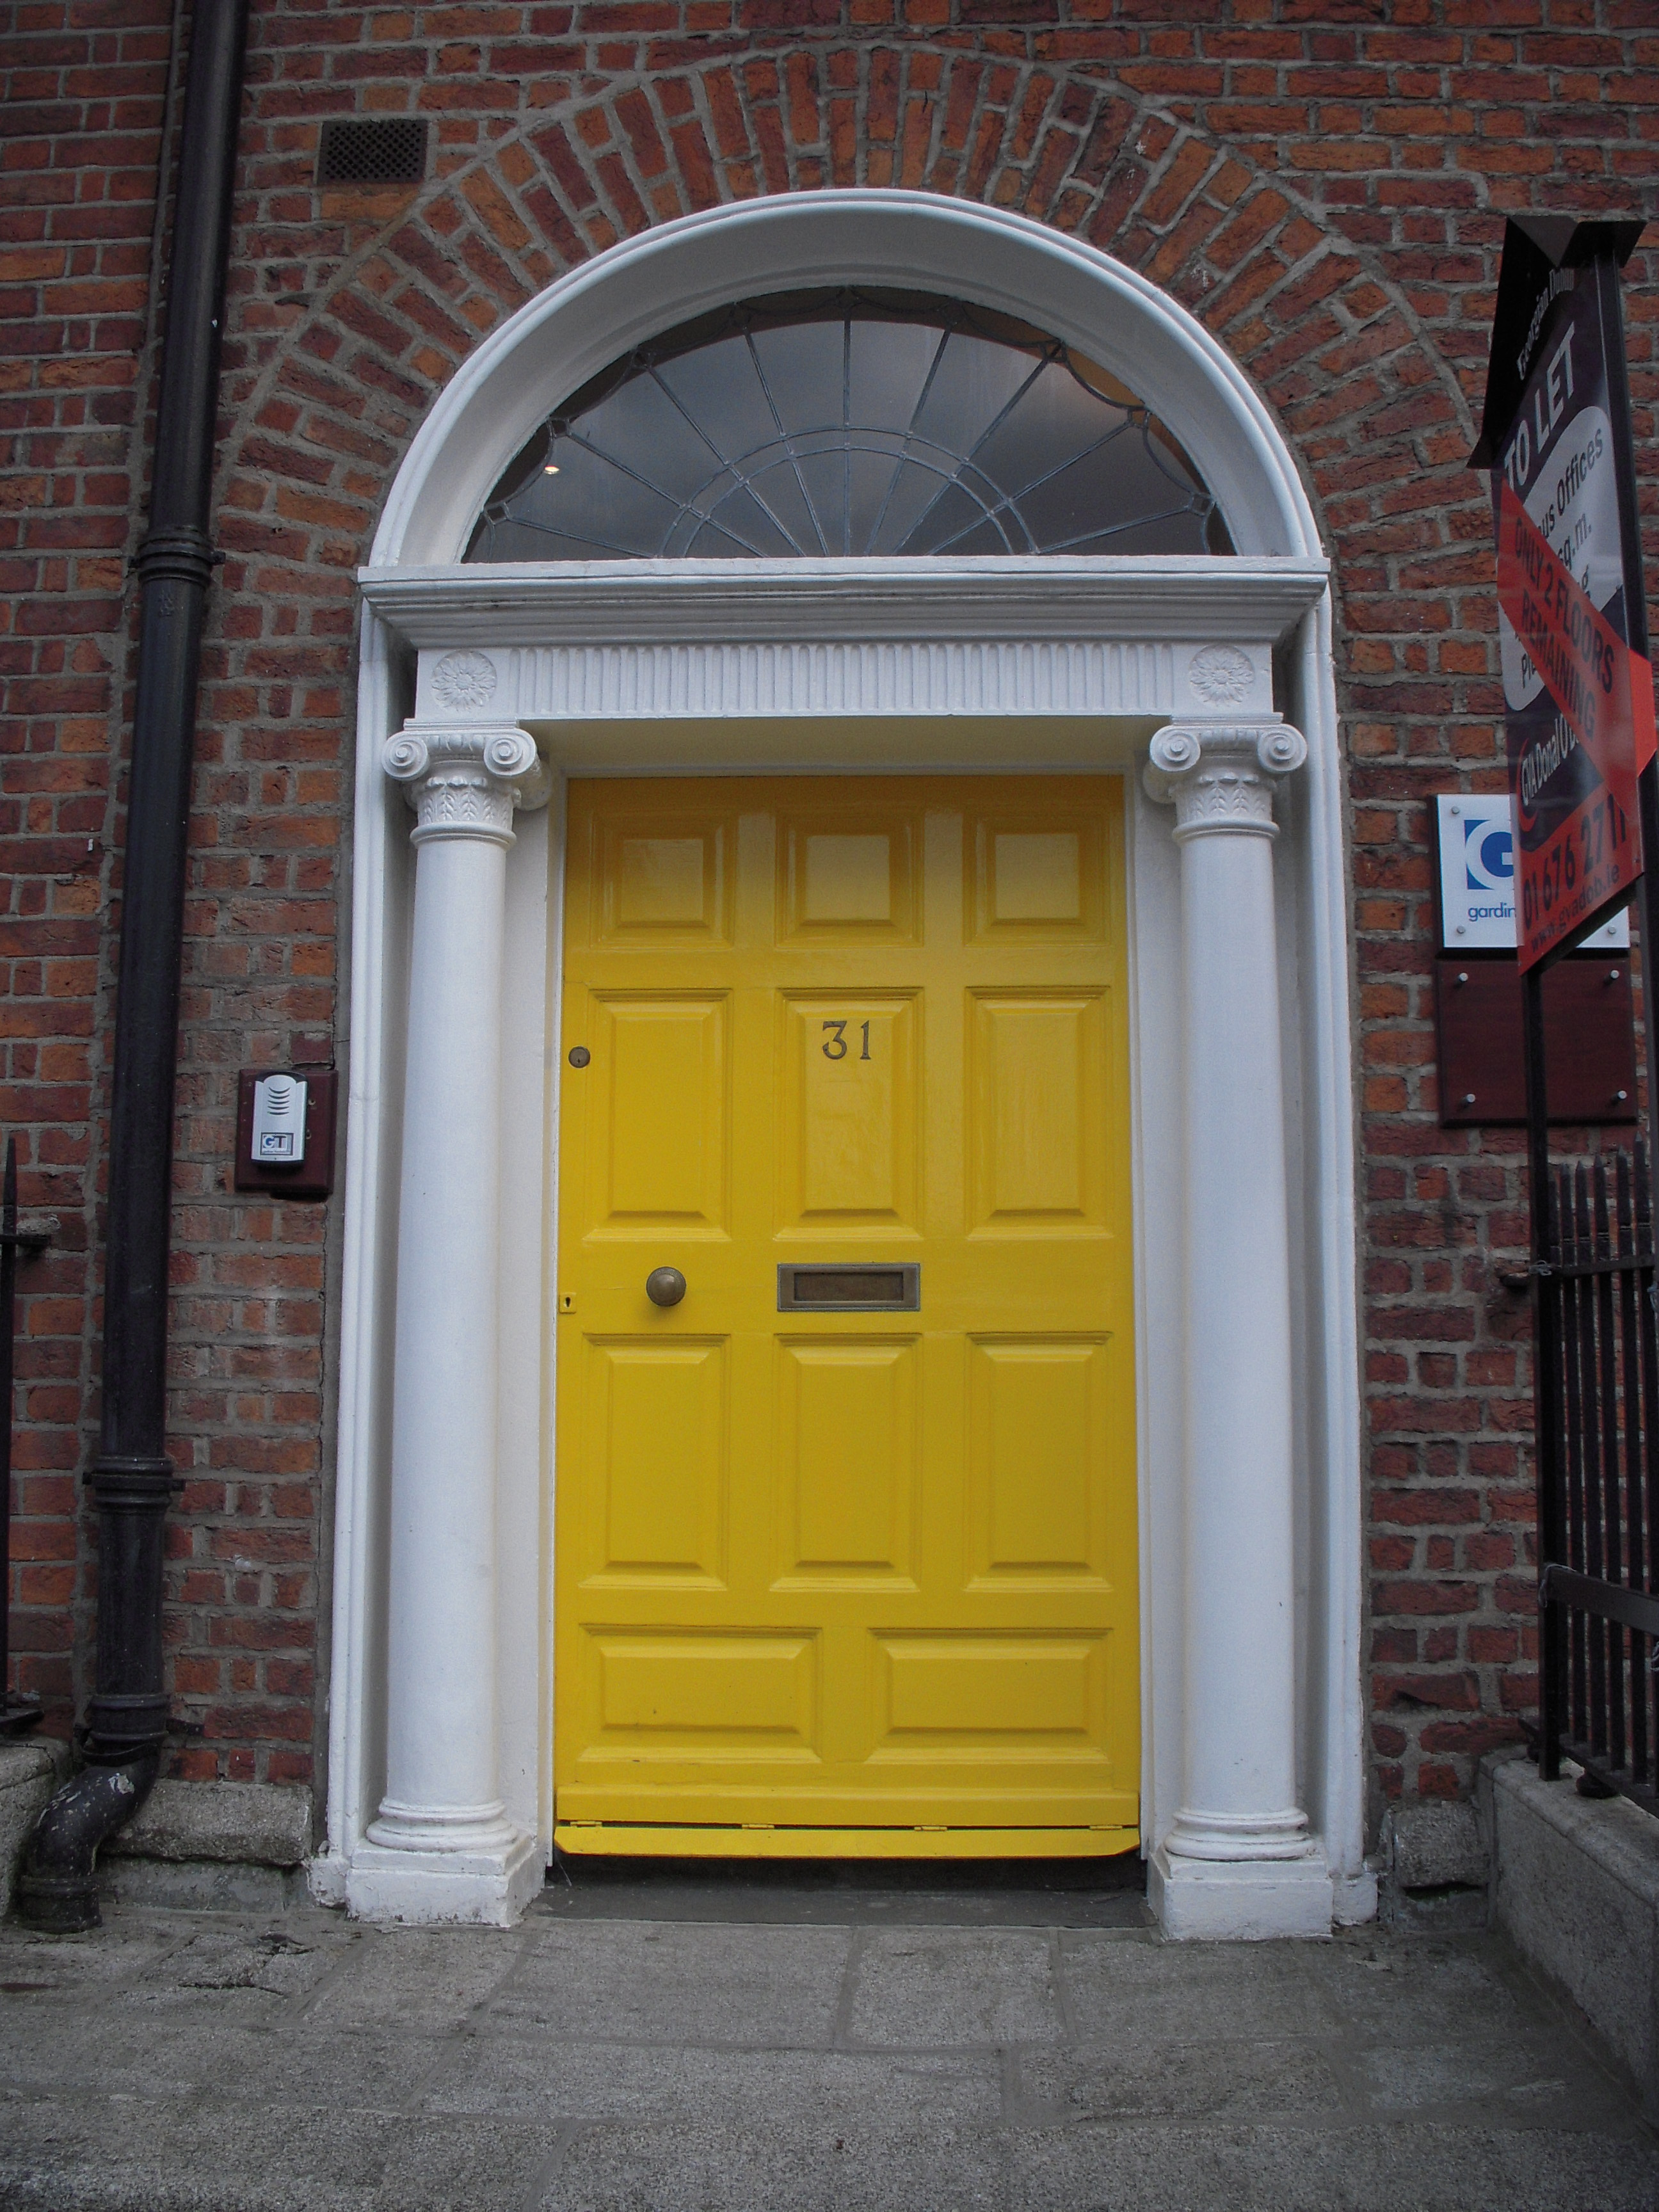 12 ft garage door image result for image result for image for Dublin garage door repair